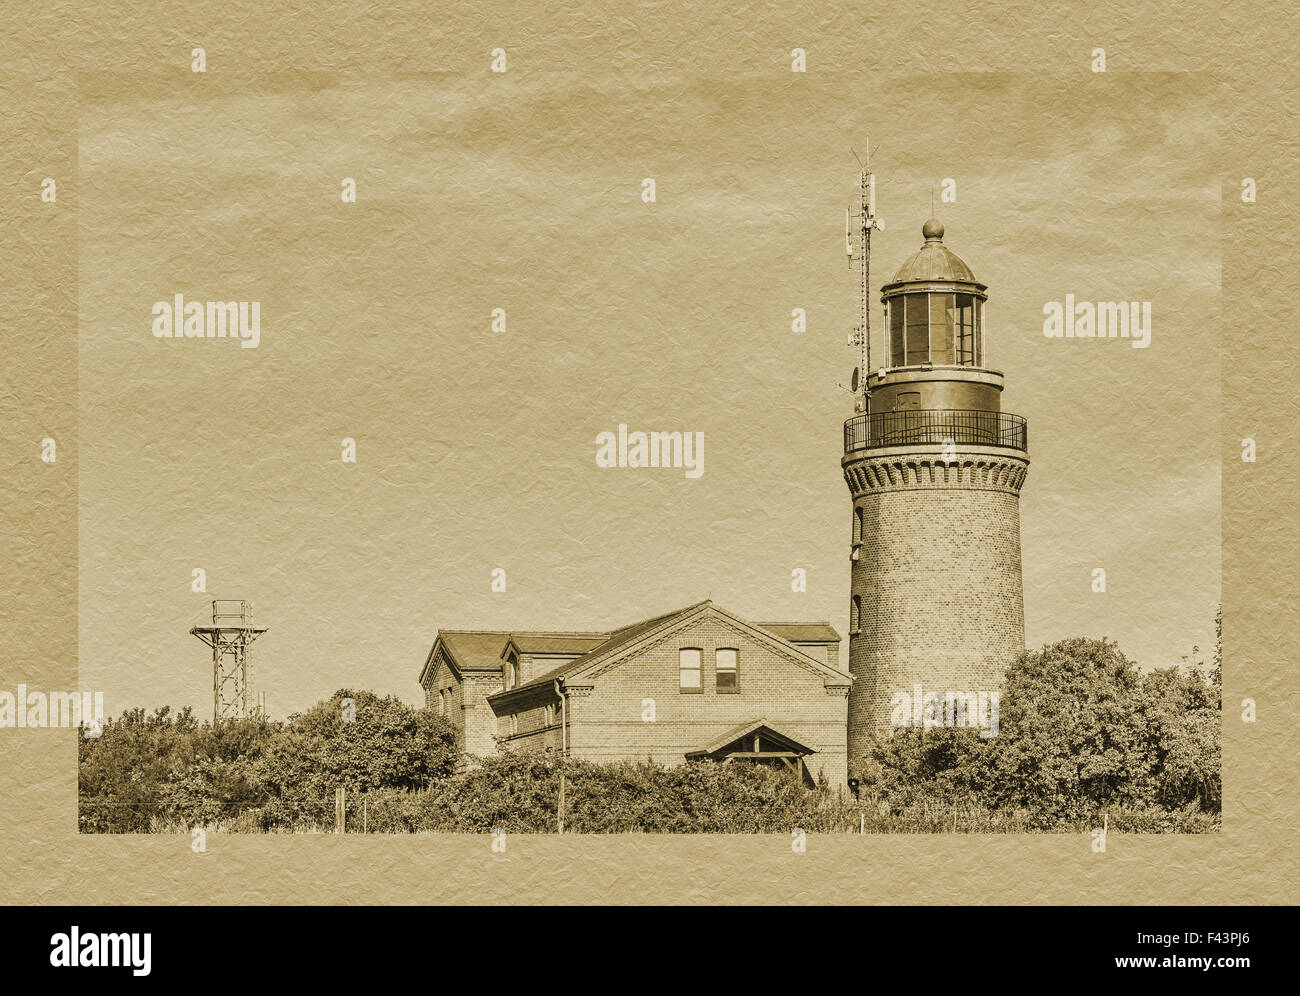 The lighthouse of Bastorf is located at the Bay of Mecklenburg at the Baltic Sea, Mecklenburg-Western Pomerania, - Stock Image